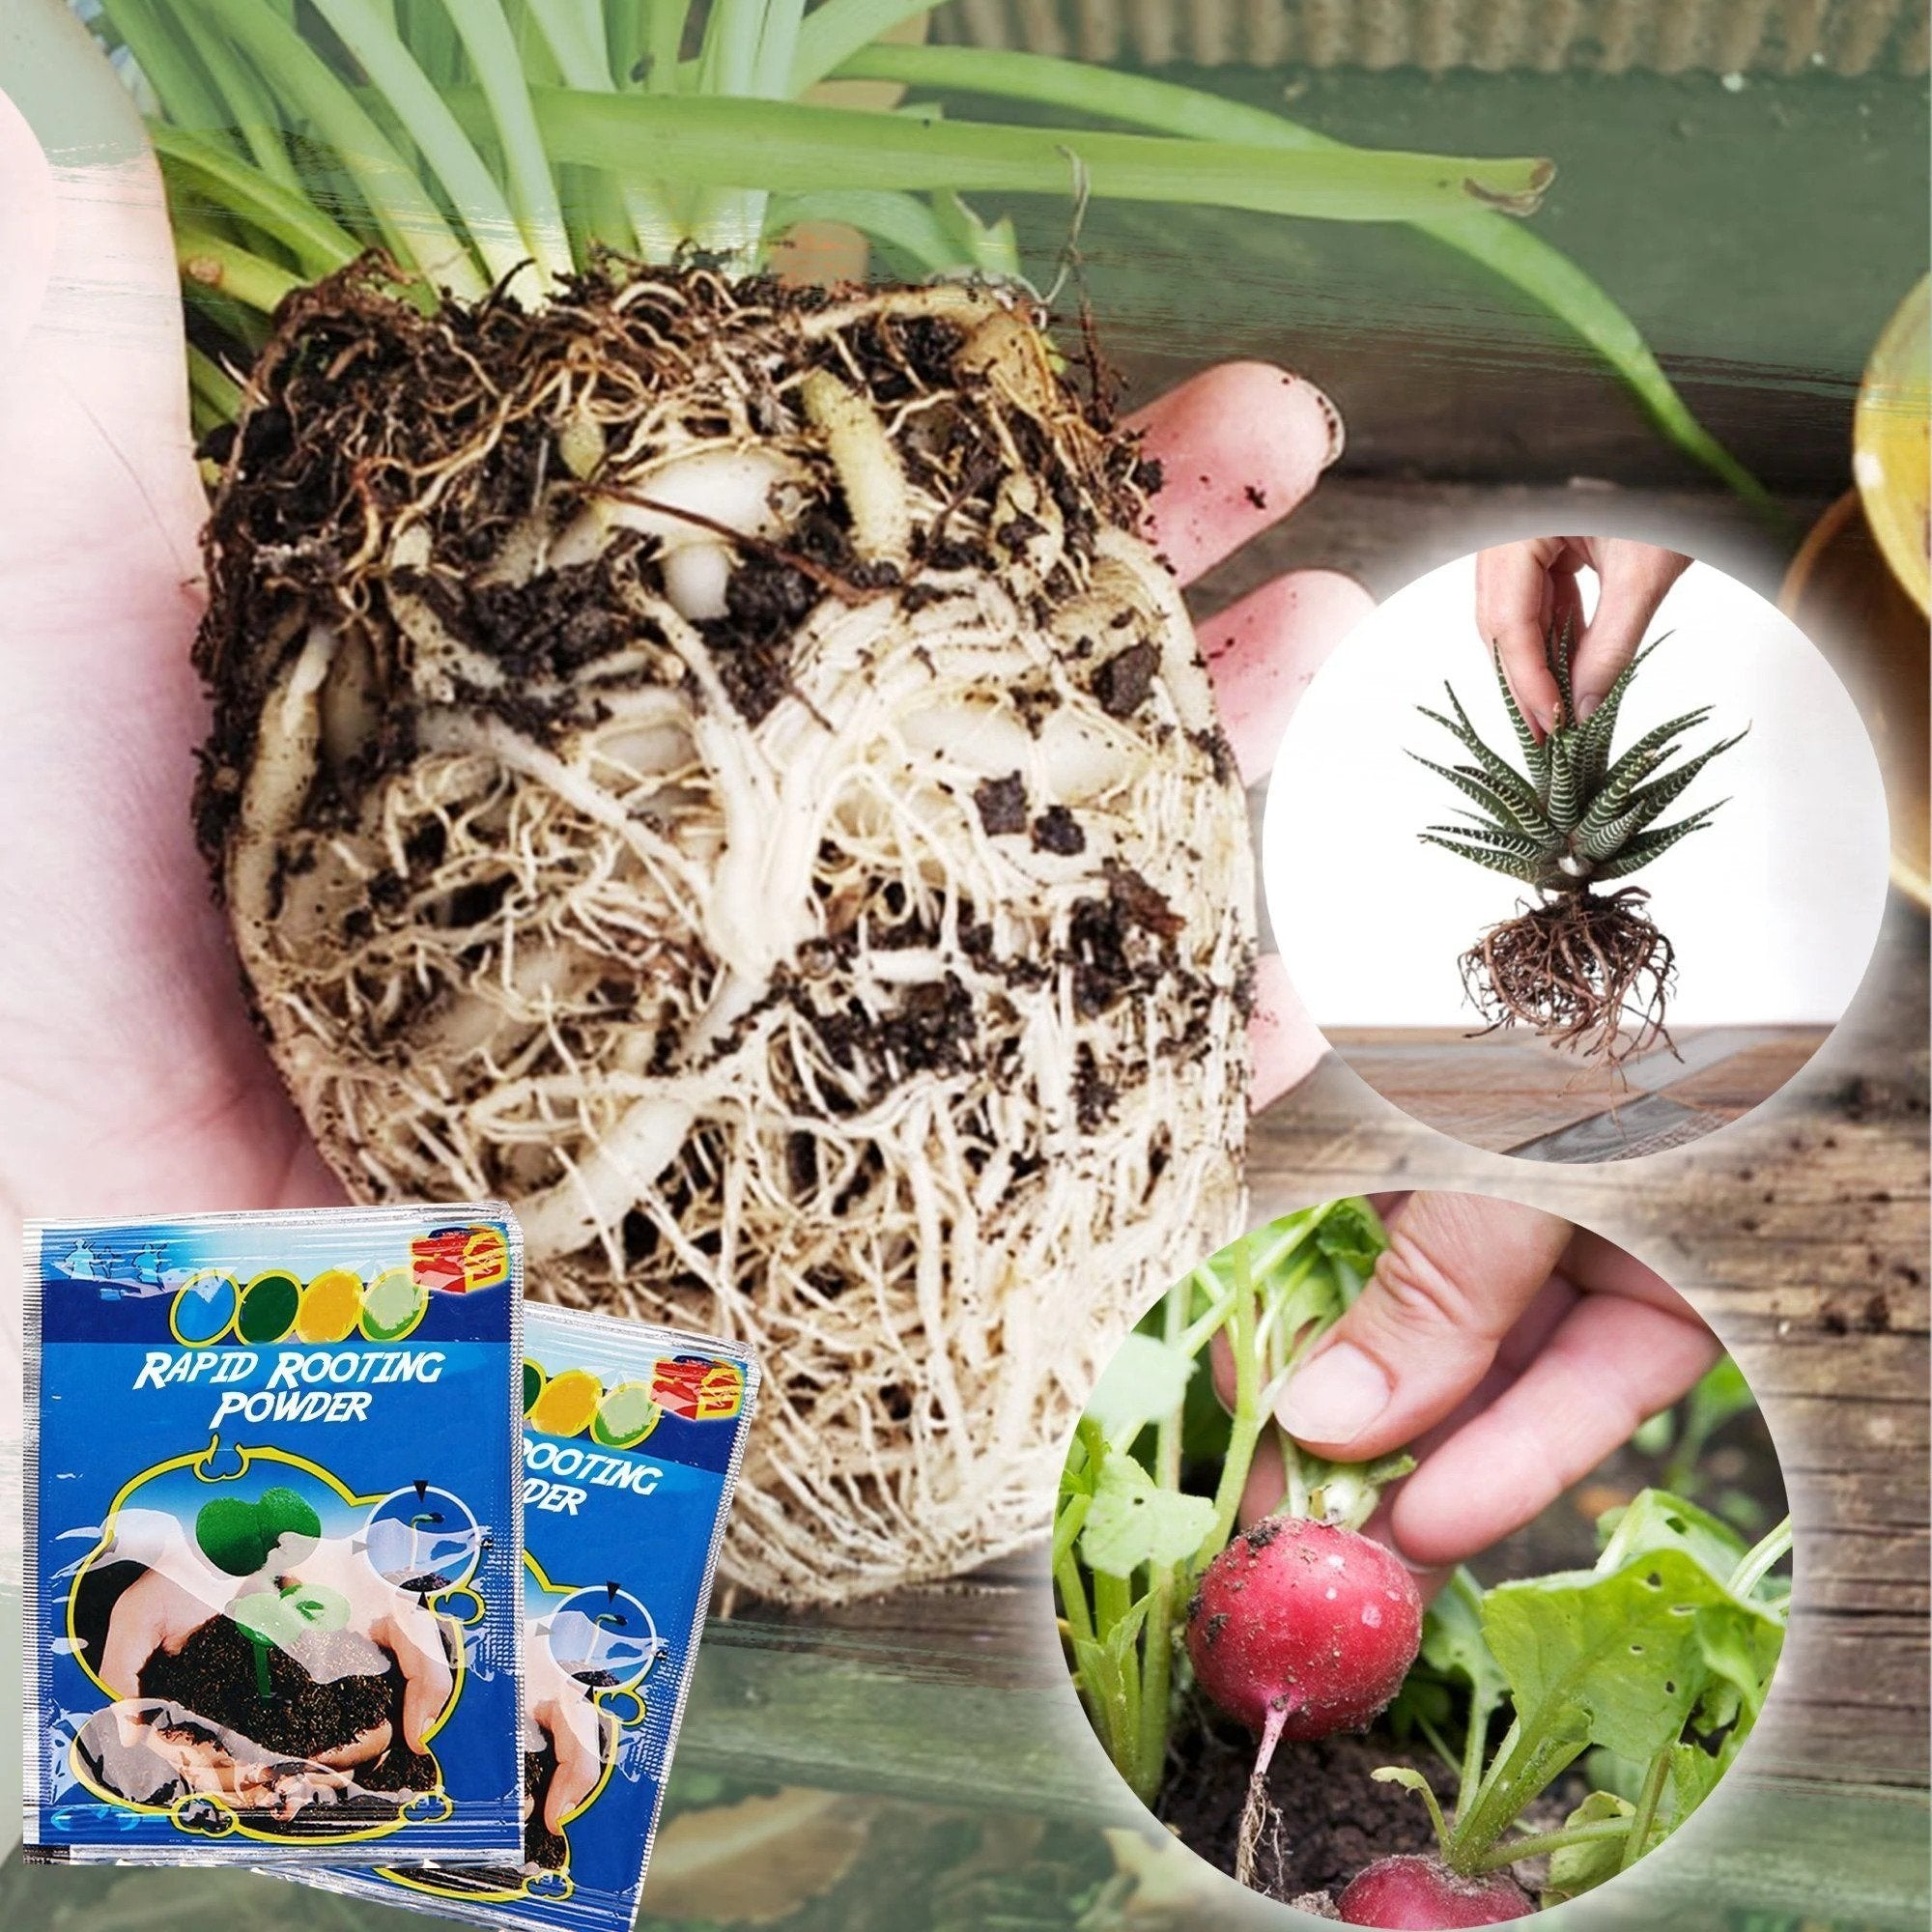 Rapid-Grow Rooting Powder